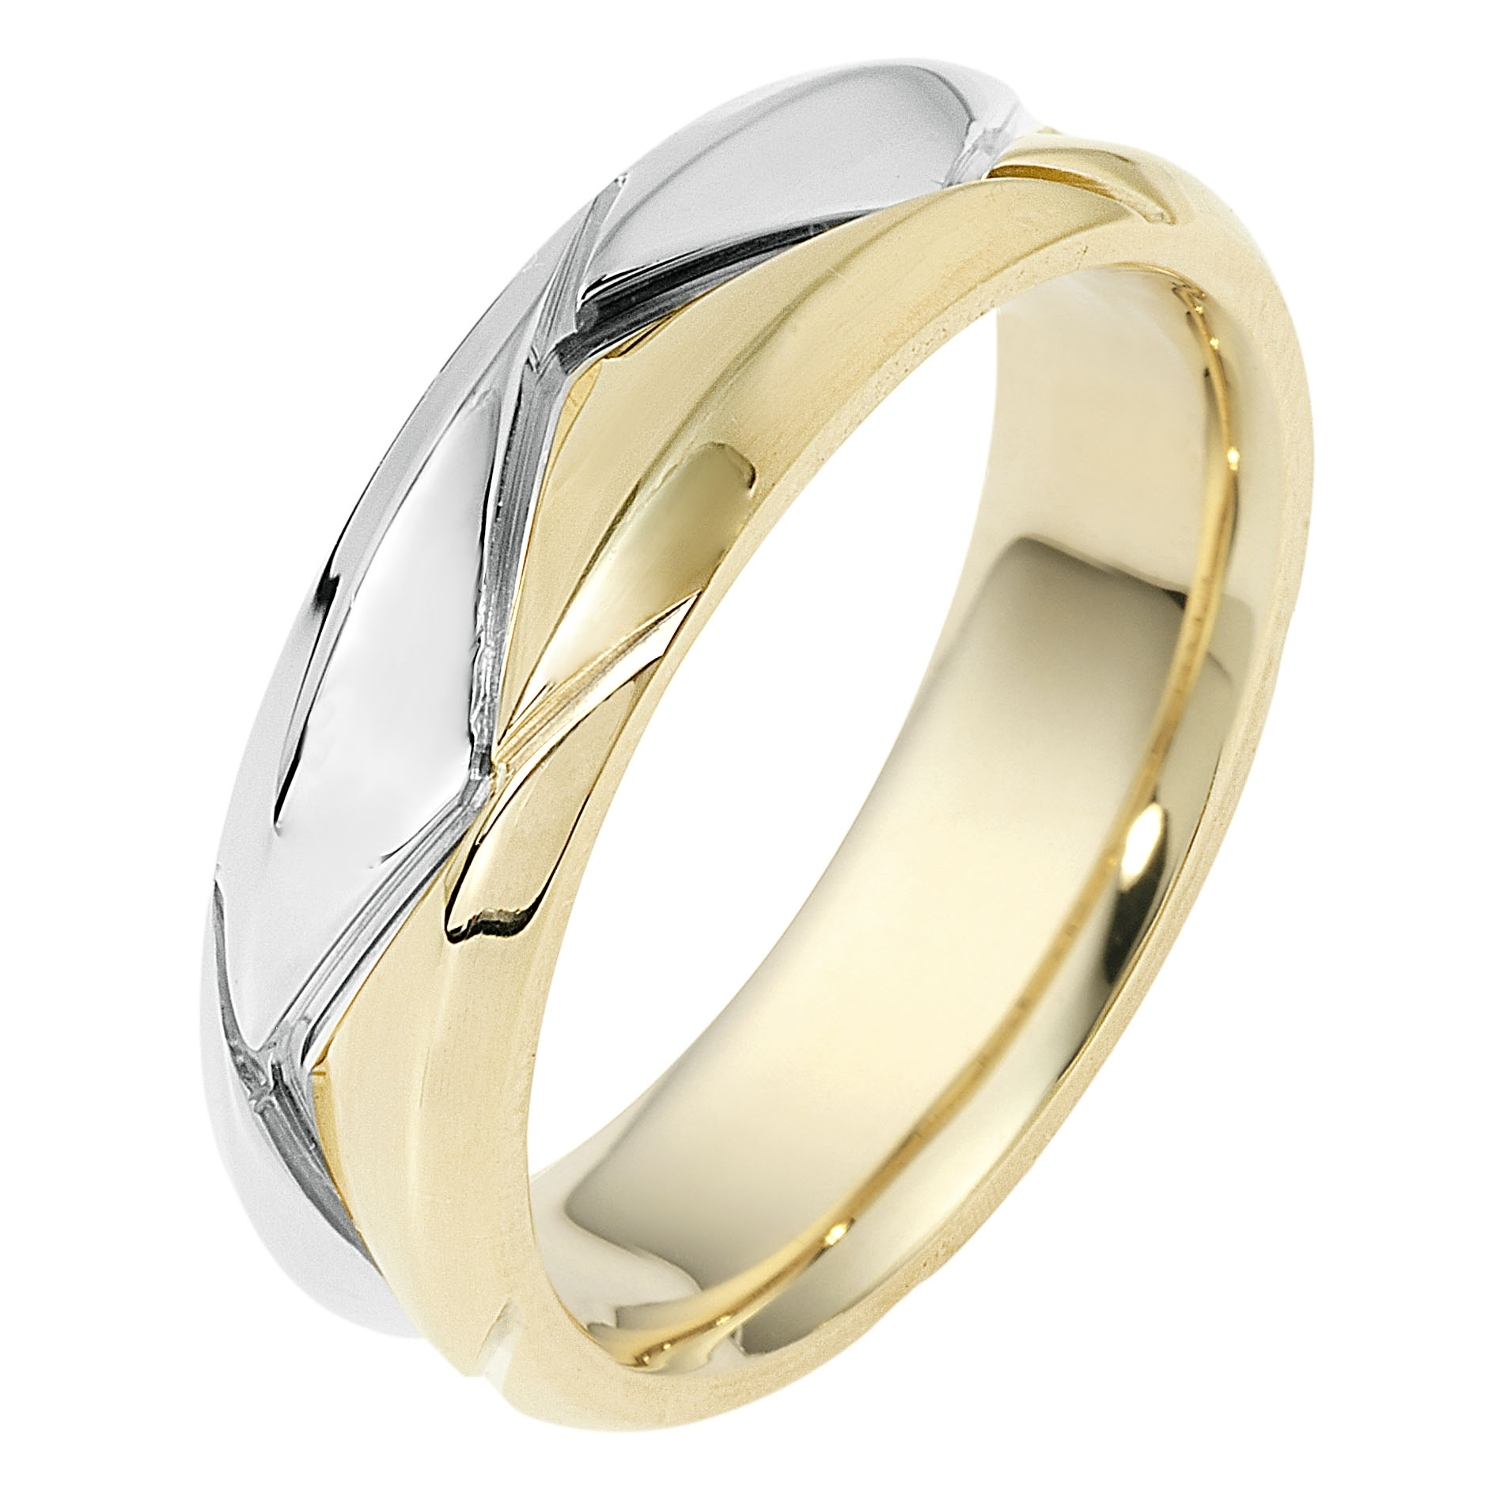 Double Chevron Two Tone Band | Indianapolis Men's Rings For Current Men's Chevron Rings (View 10 of 15)